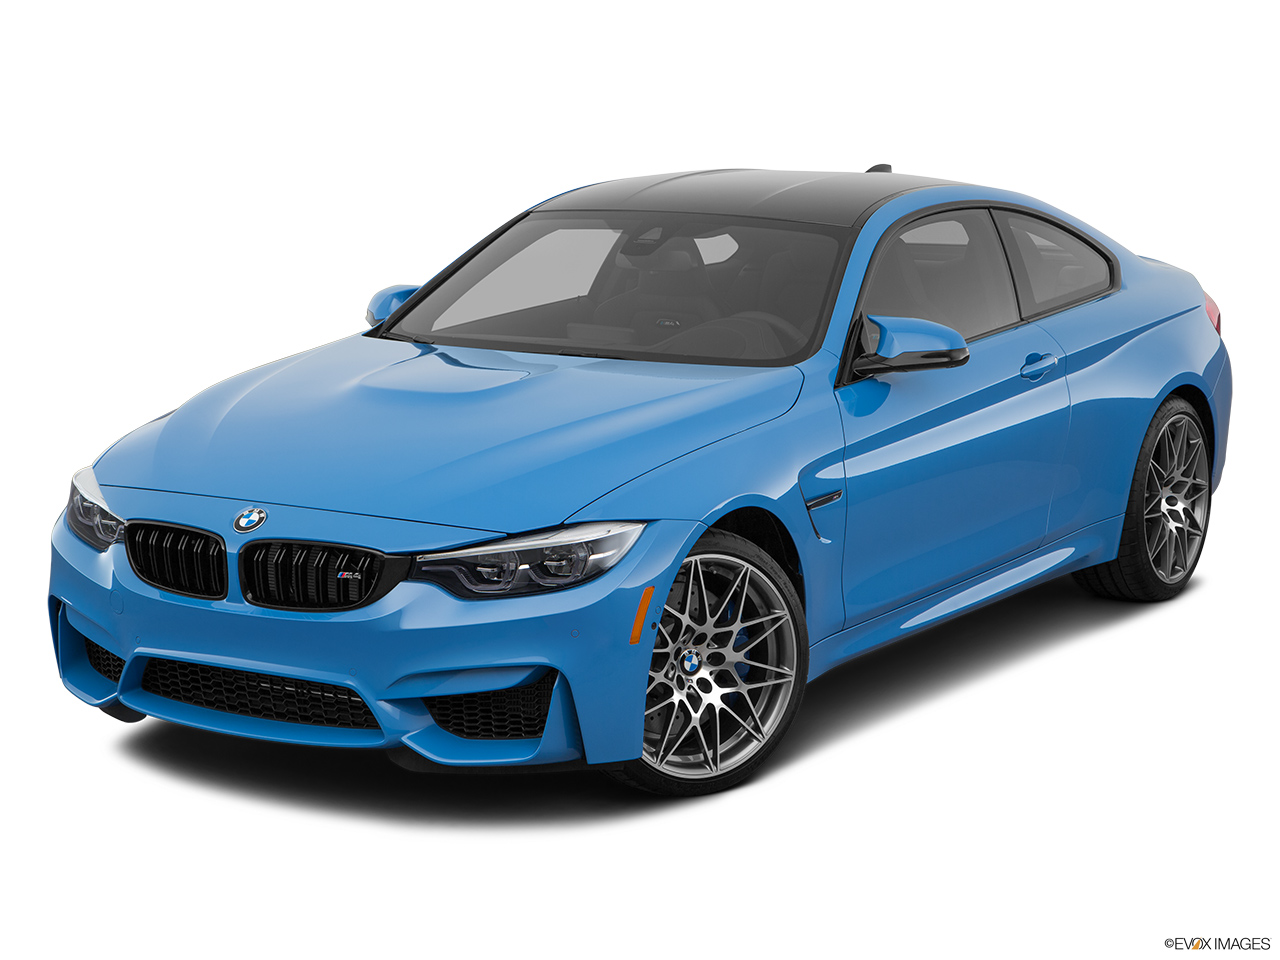 Bmw M4 Coupe 2018 3 0t In Uae New Car Prices Specs